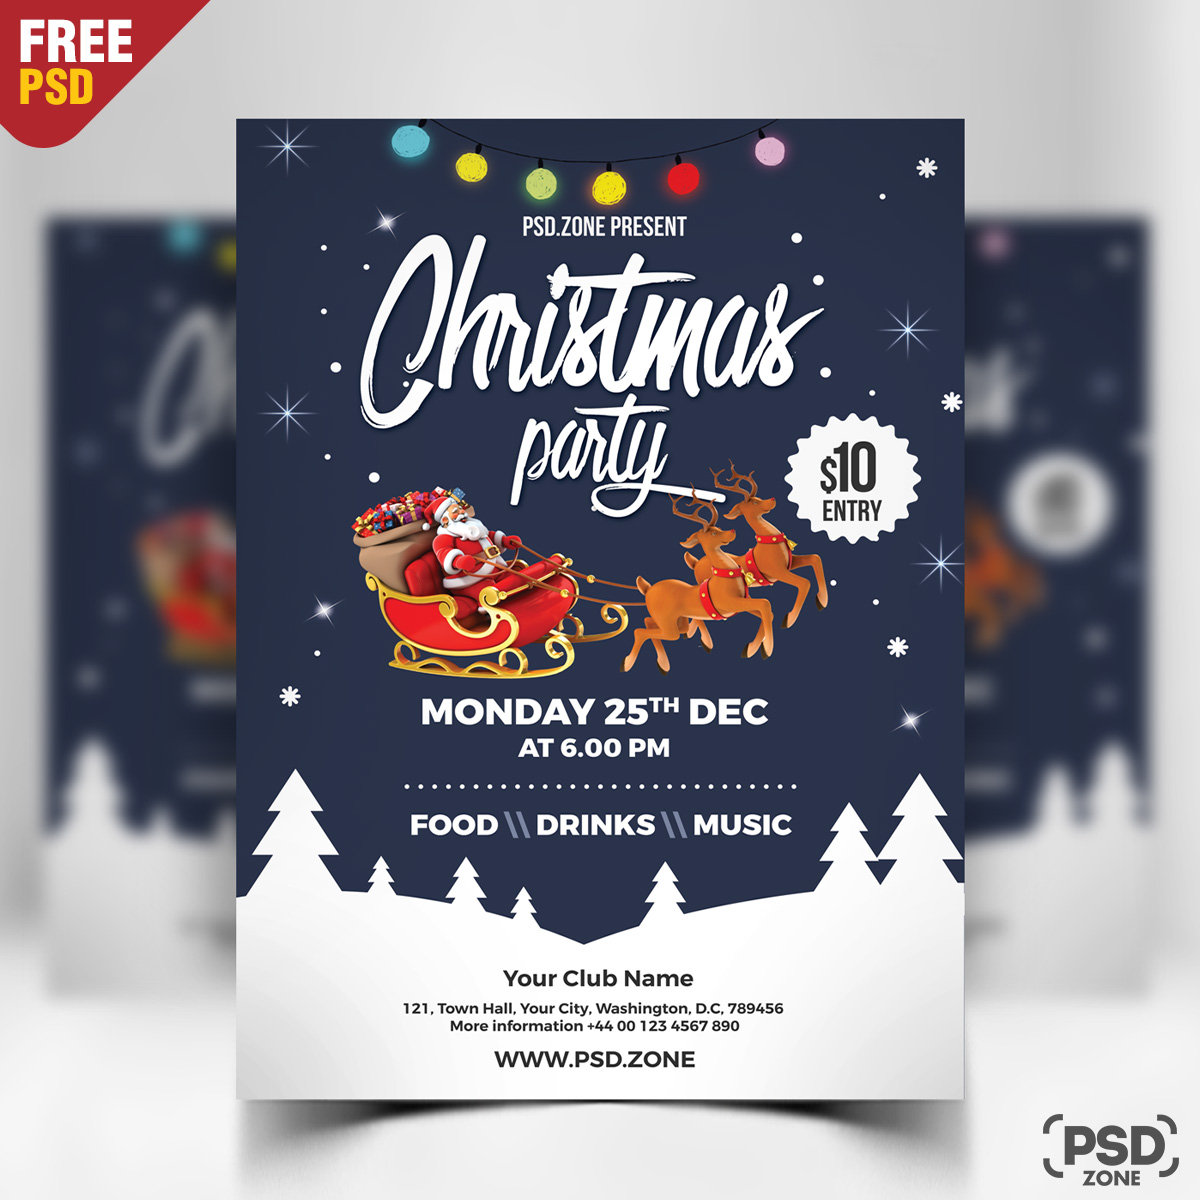 Christmas Party Flyer Free PSD